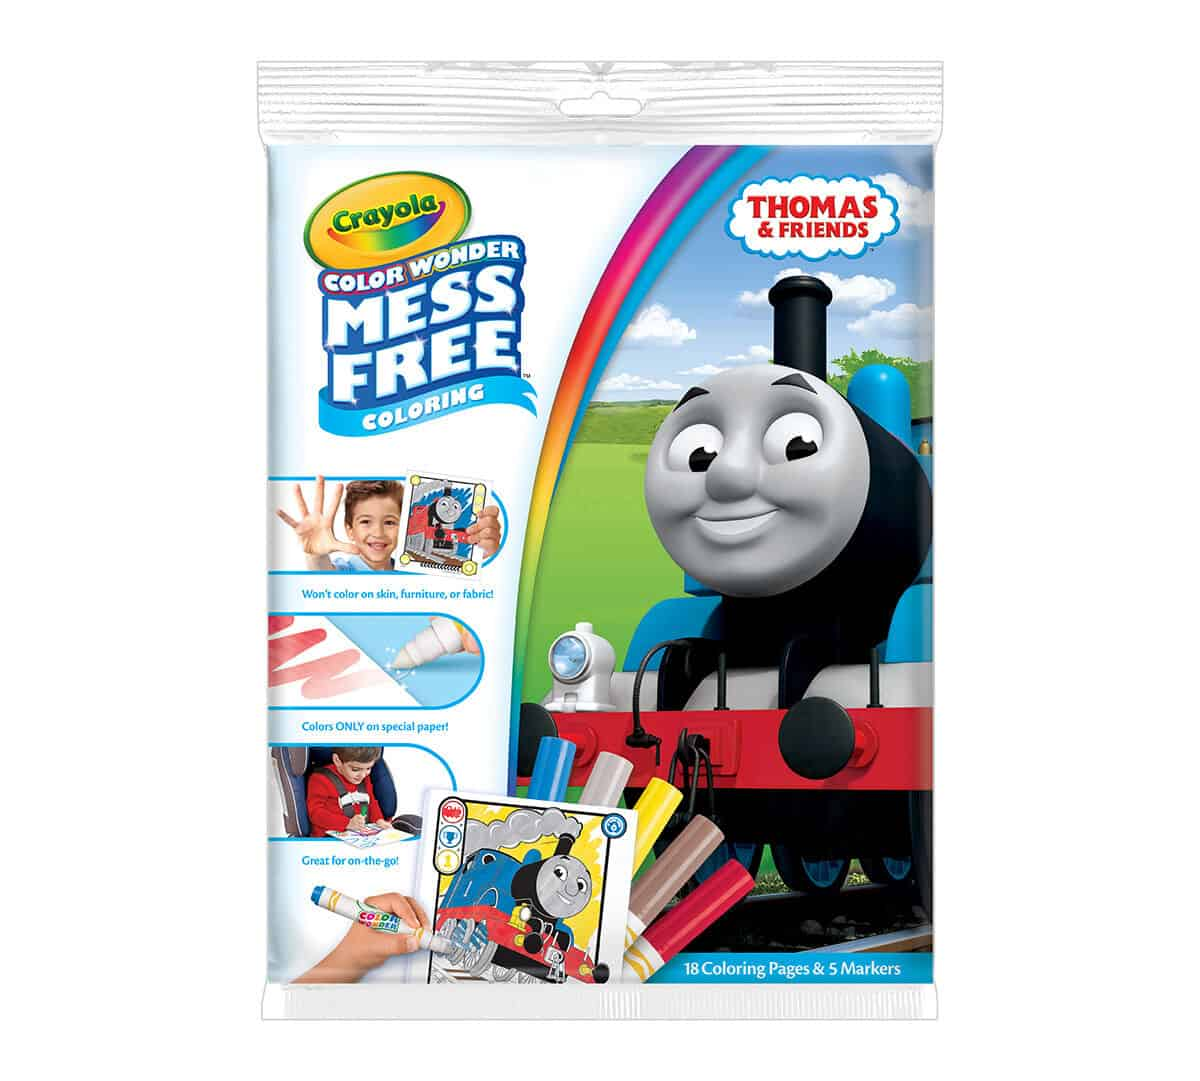 Color Wonder Mess Free Coloring Pad & Markers, Thomas and Friends